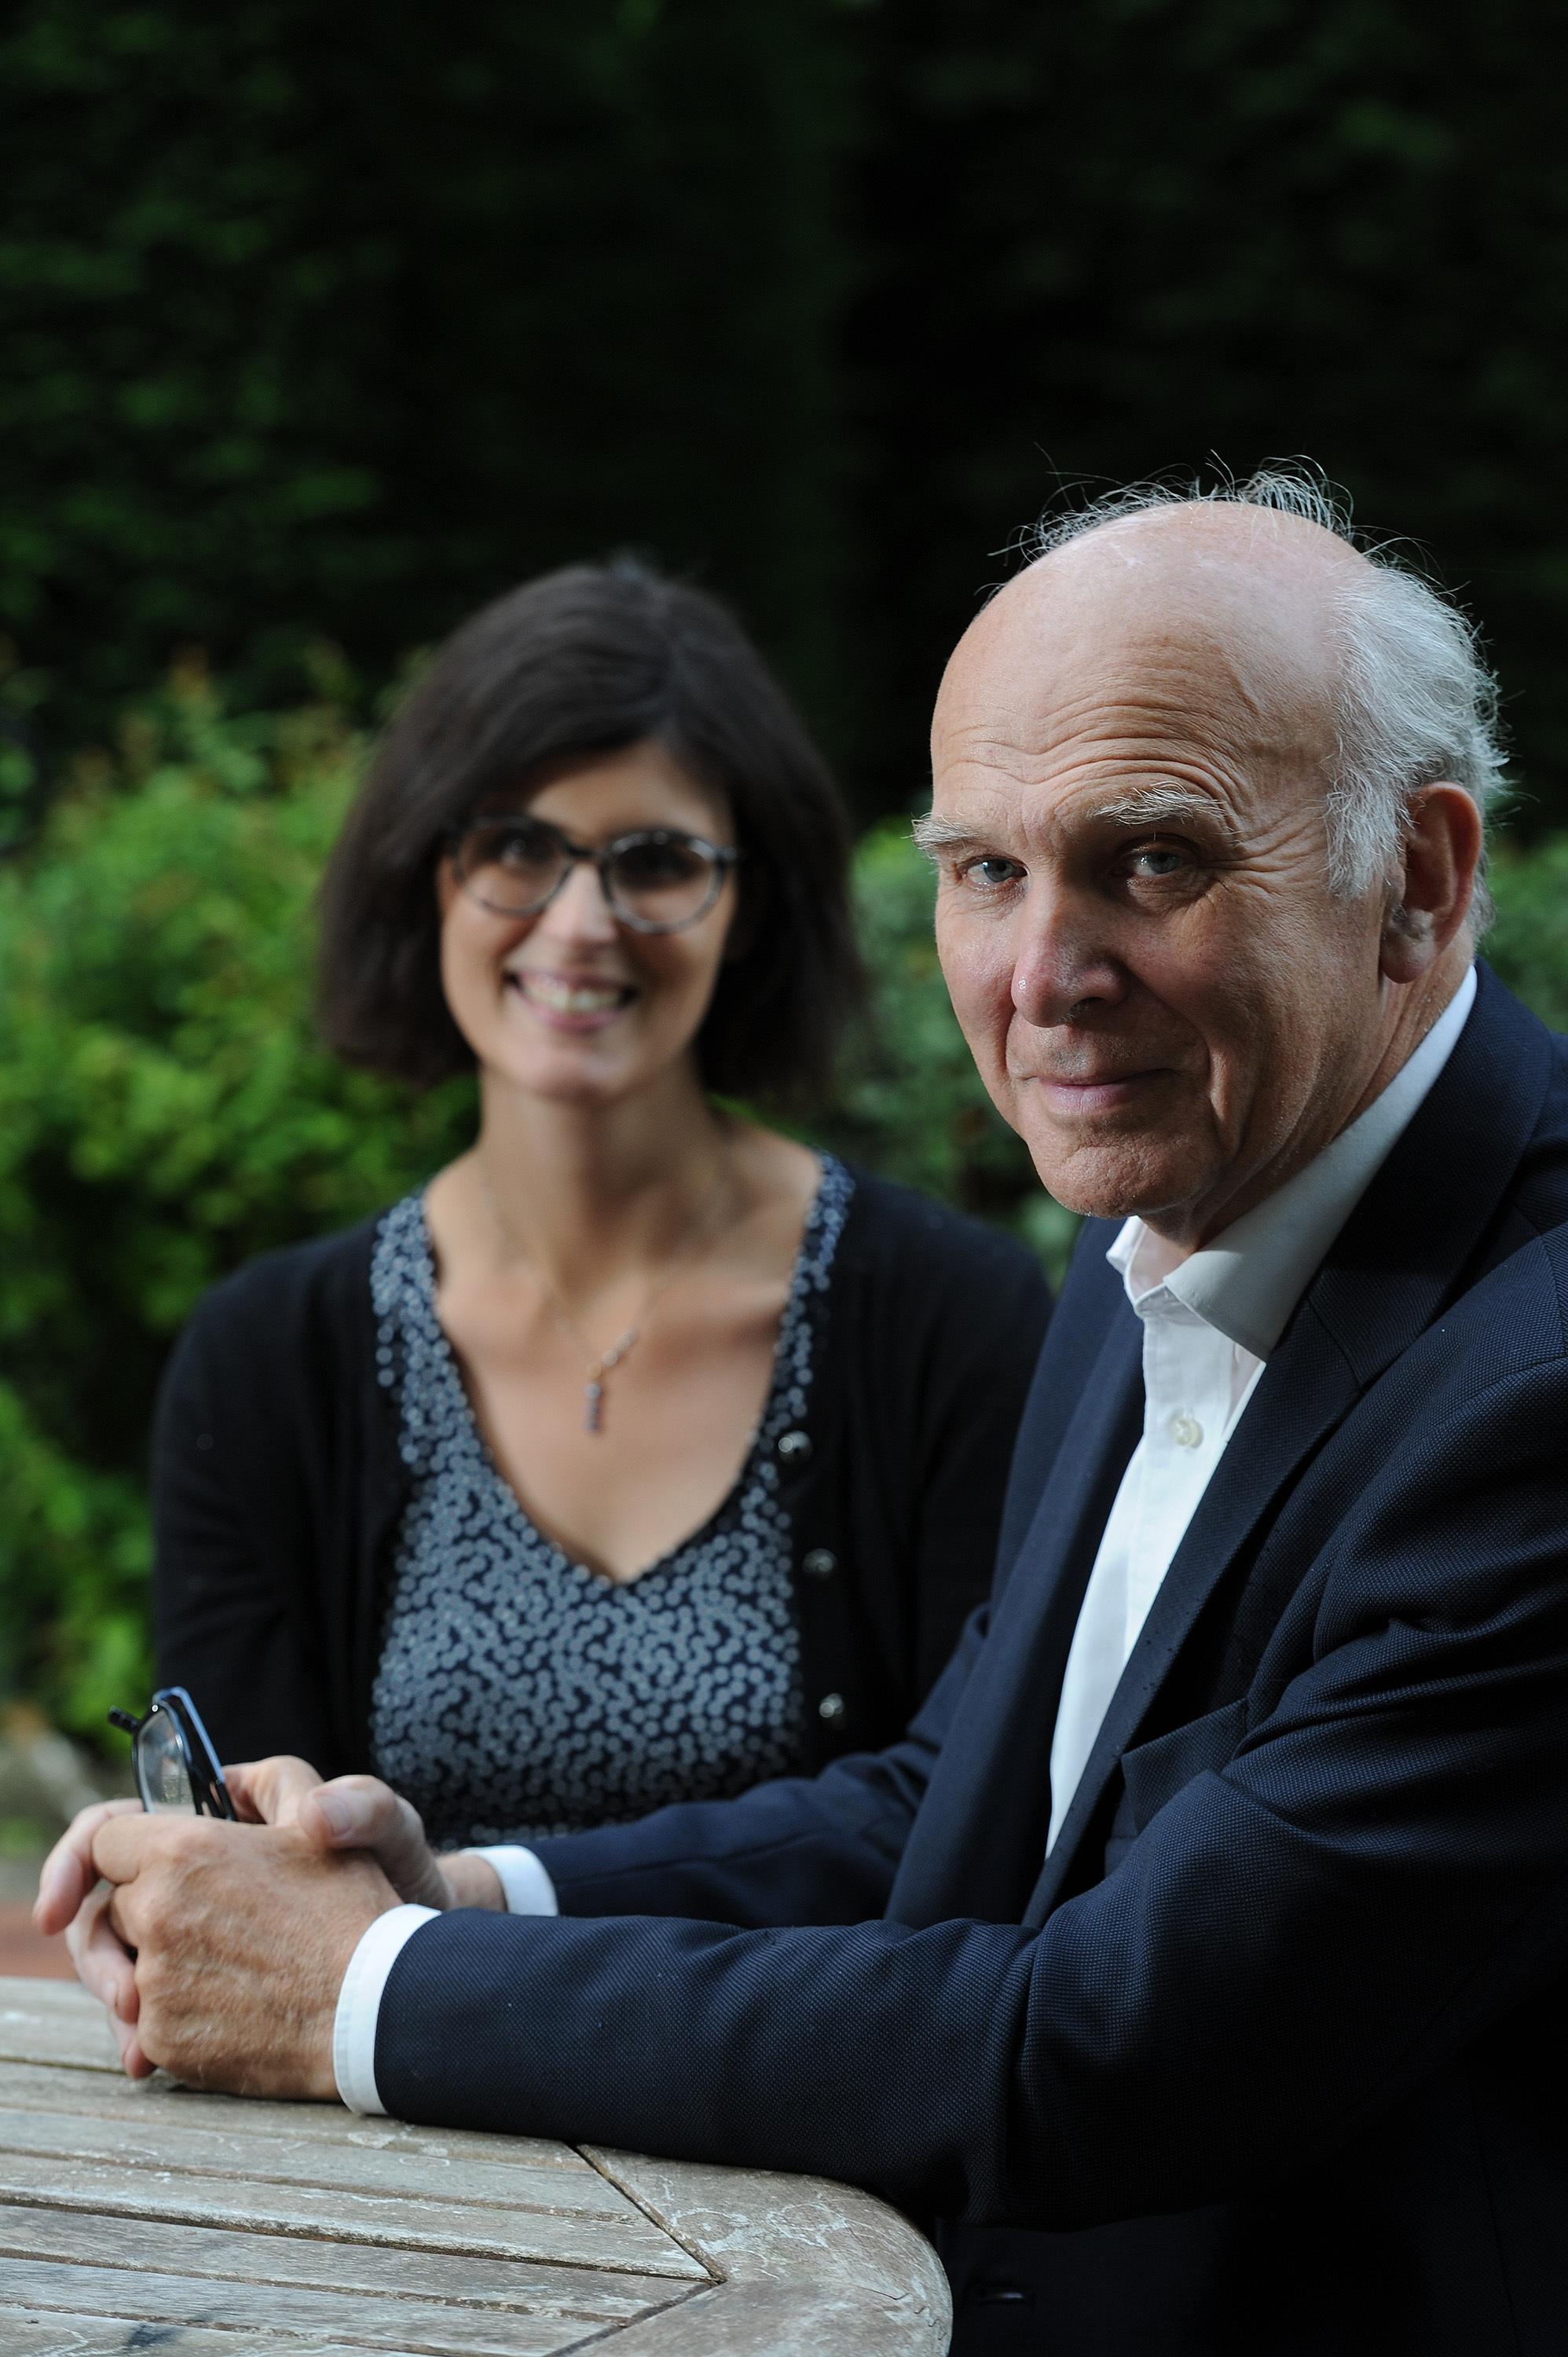 Leader of the Lib Dems, Sir Vince Cable, with Oxford West and Abingdon MP Layla Moran in Abingdon last year. Pic by Jon Lewis